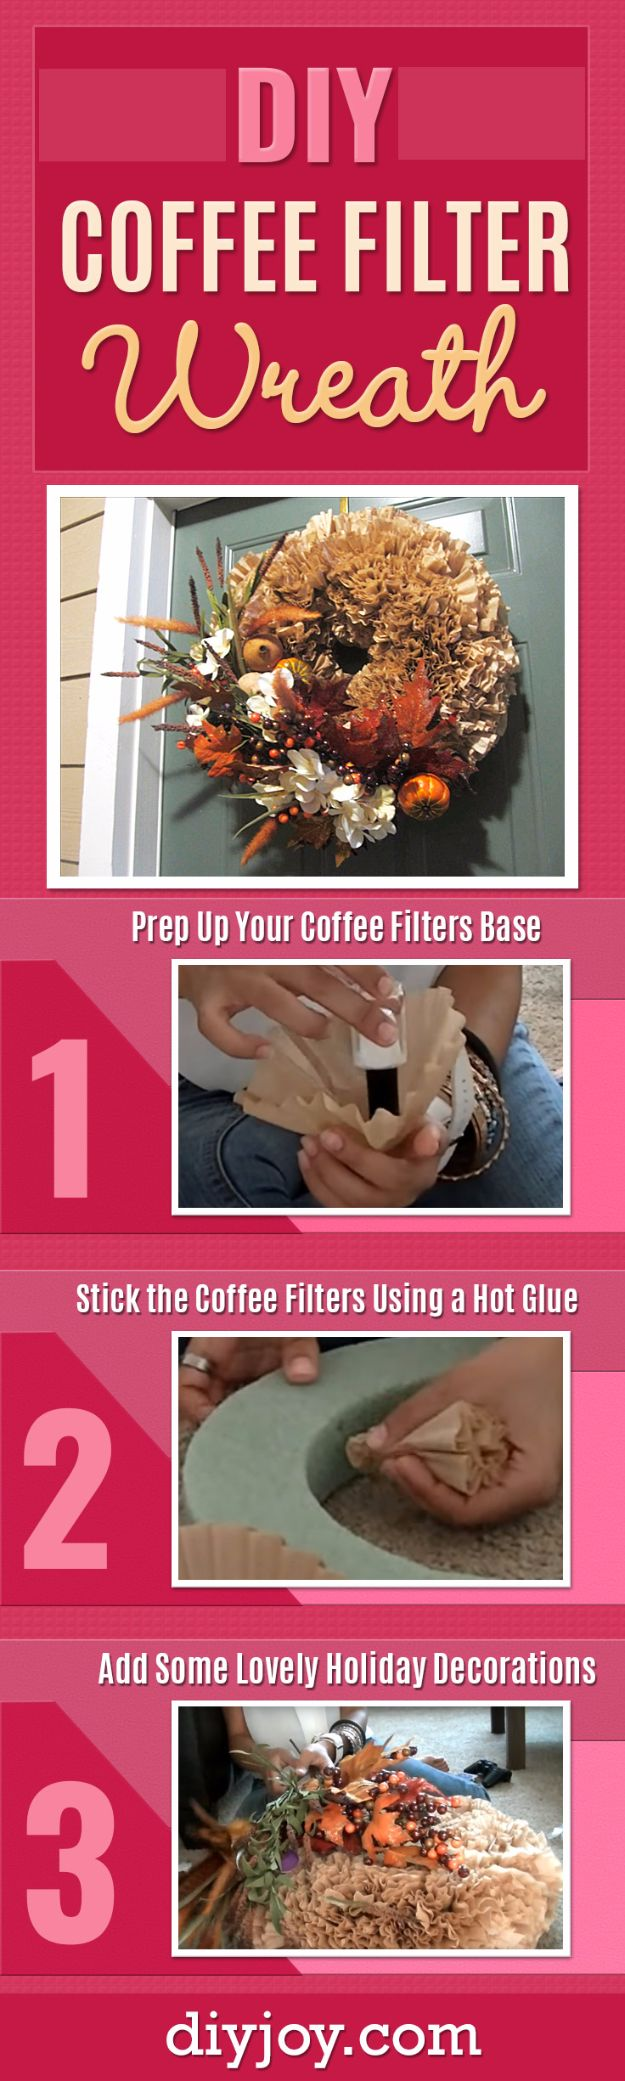 Best Crafts for Fall - DIY Fall Coffee Filter Wreath - DIY Mason Jar Ideas, Dollar Store Crafts, Rustic Pumpkin Ideas, Wreaths, Candles and Wall Art, Centerpieces, Wedding Decorations, Homemade Gifts, Craft Projects with Leaves, Flowers and Burlap, Painted Art, Candles and Luminaries for Cool Home Decor - Quick and Easy Projects With Step by Step Tutorials and Instructions